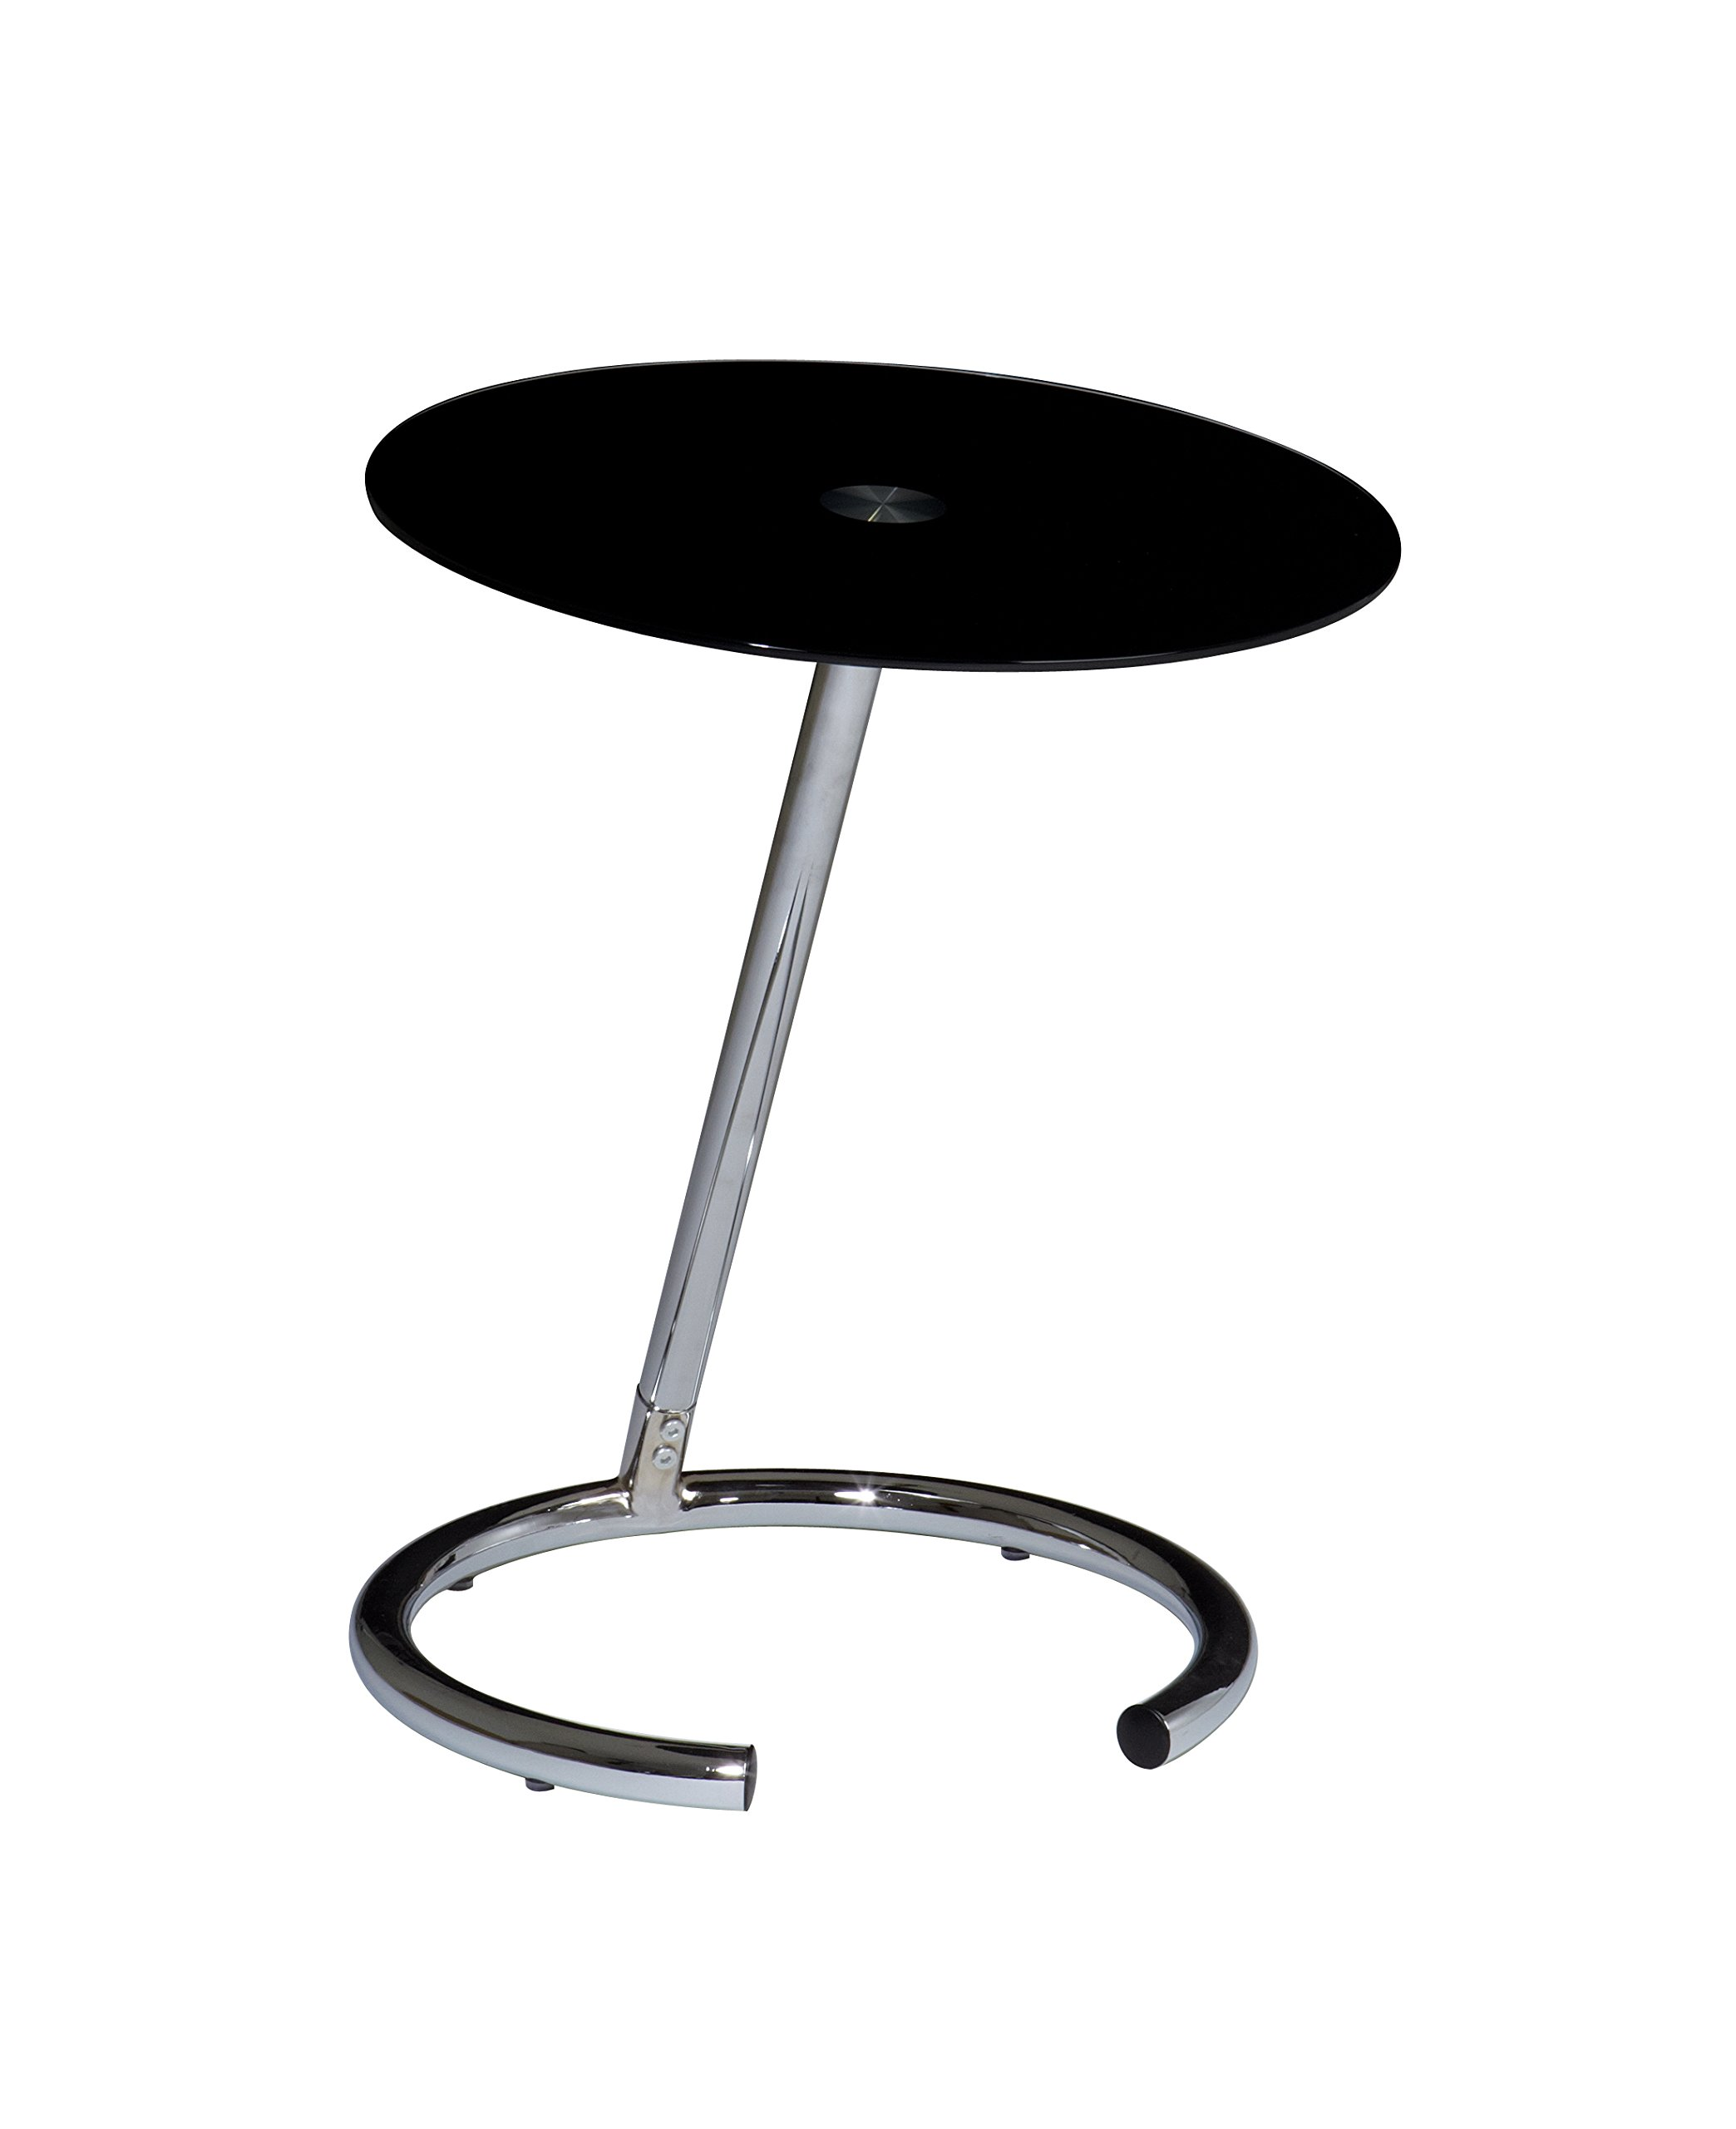 AVE SIX Yield Modern Telephone Table with Chromed Steel Base, Black Glass Top by Avenue Six